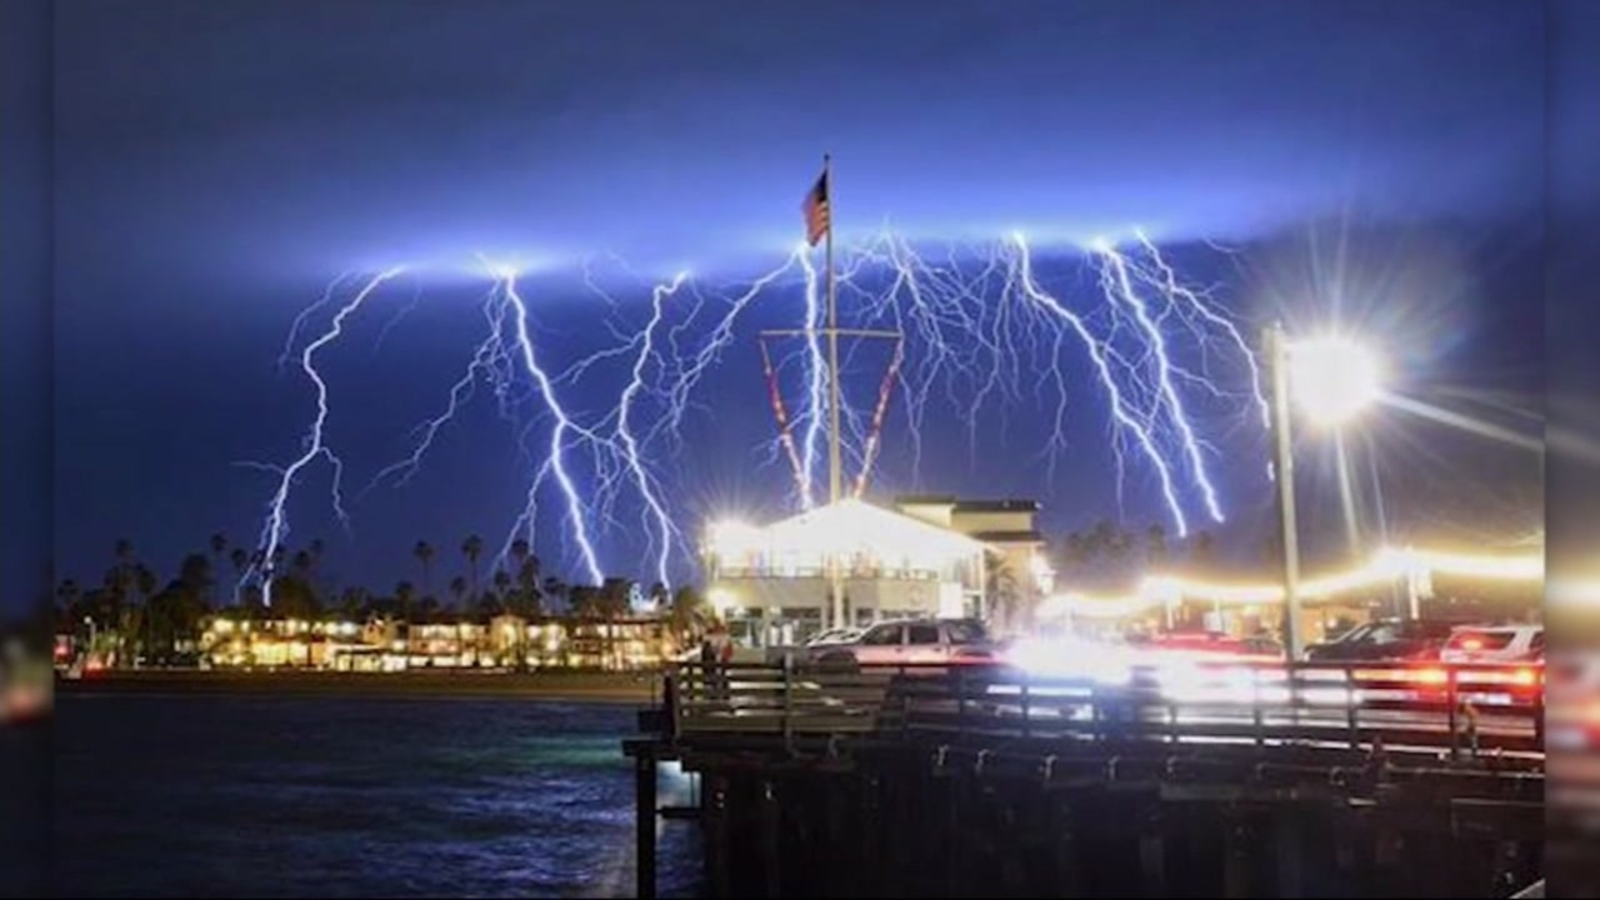 More than 2200 lighting strikes reported in southern california overnight abc7news com